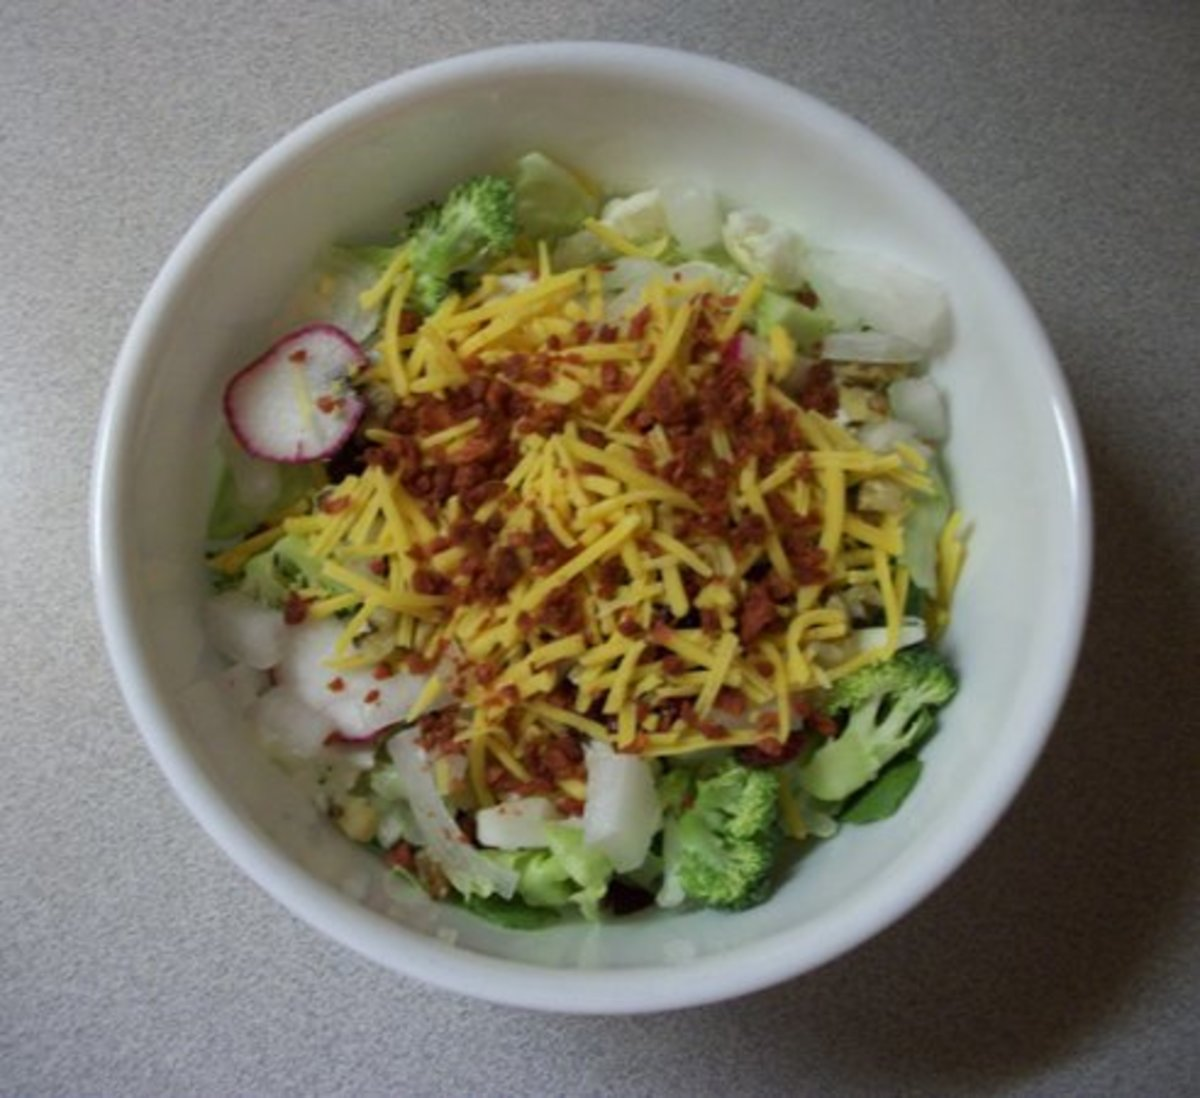 Ken's Favorite Tossed Salad Recipe